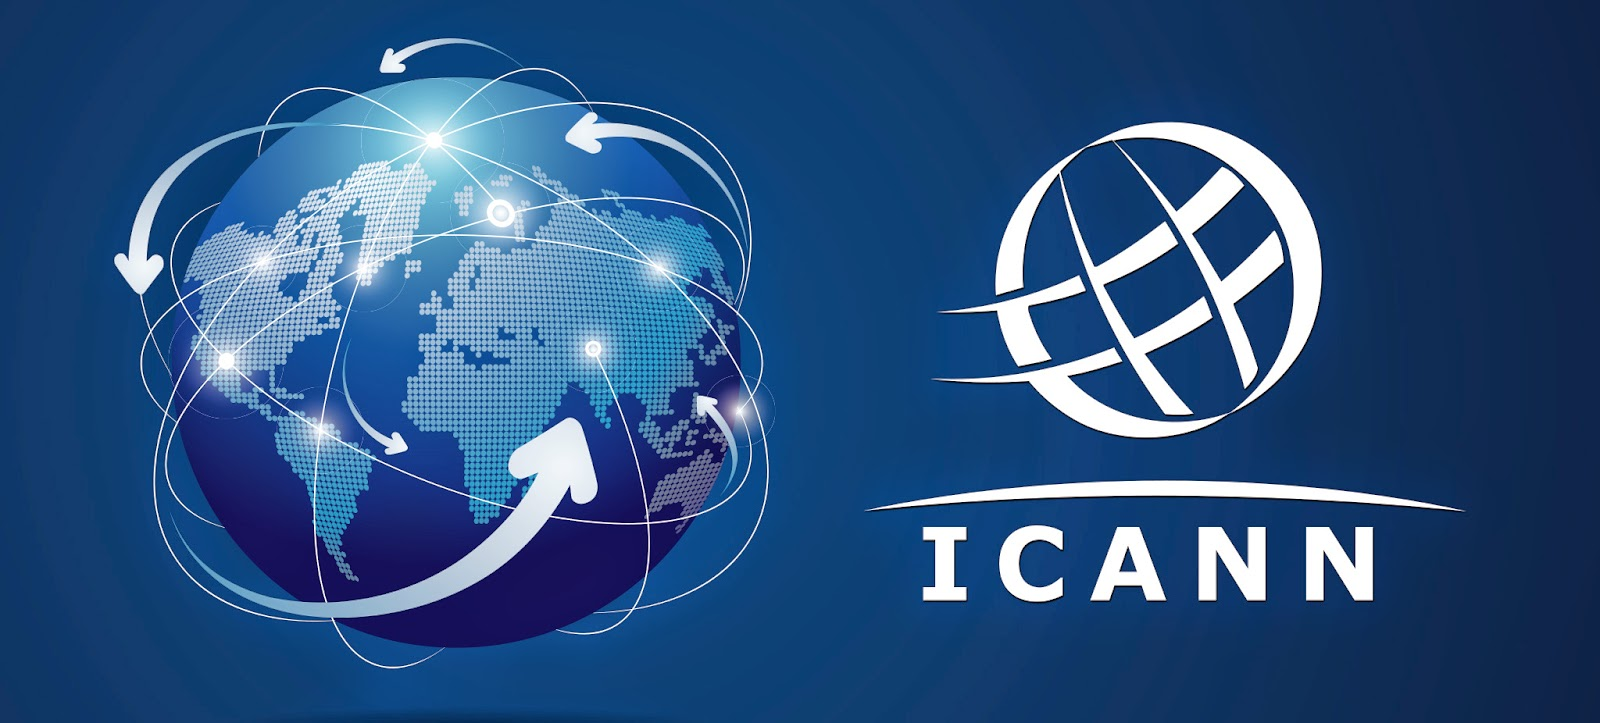 ICANN got Hacked, Fell Victim to a Spear Phishing Attack, ICANN got Hacked, Internet Corporation for Assigned Names and Numbers, hacking web server, information security experts, cyber security team, info security experts, cyber myths, information security experts, pentesting tools